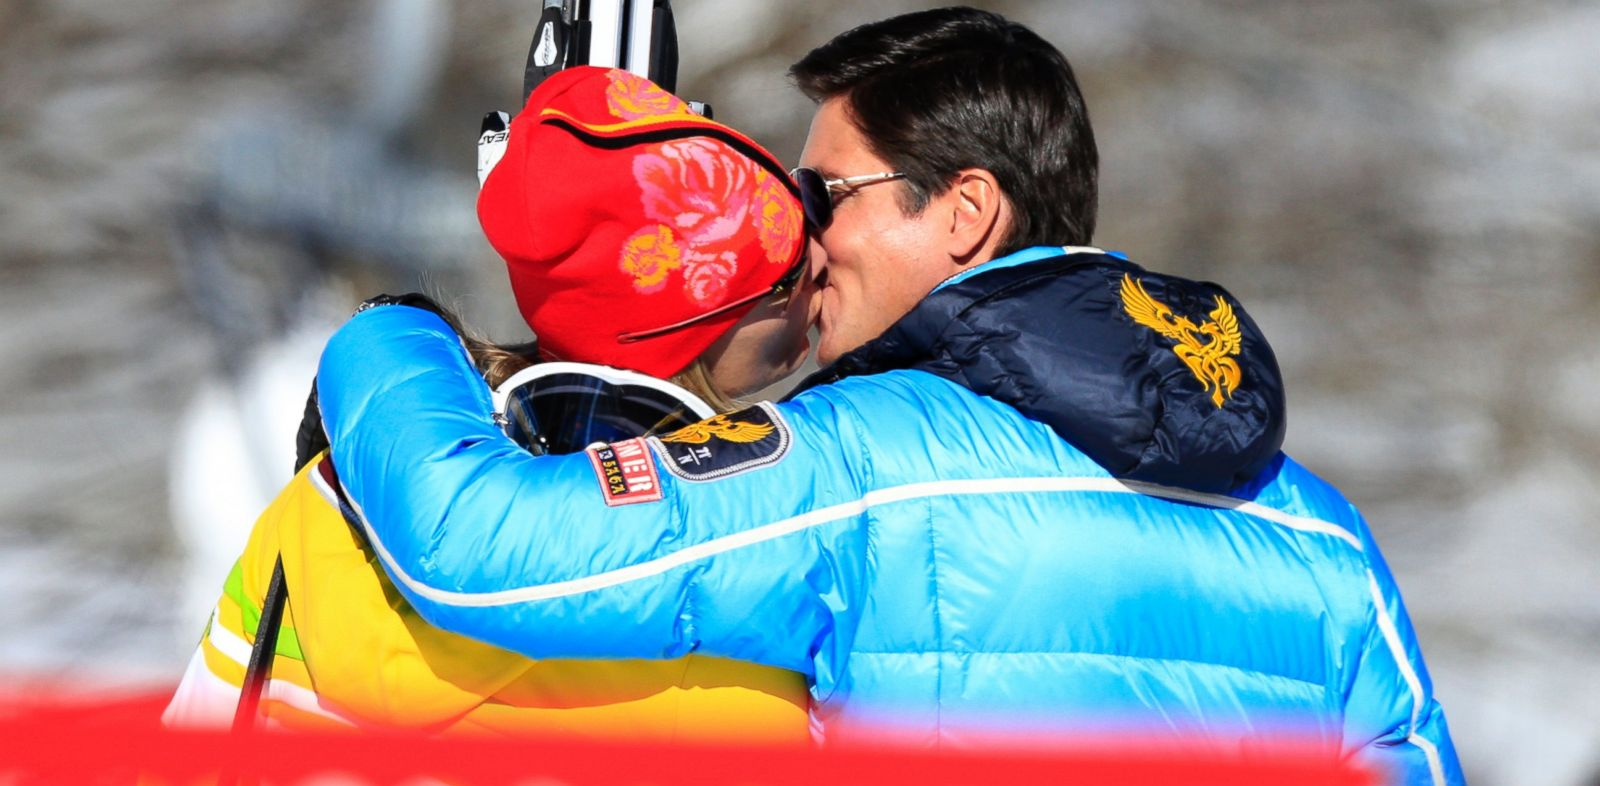 PHOTO: Germanys Maria Hoefl-Riesch kisses her husband and manager Marcus Hoefl after her womens alpine skiing downhill training session at the Rosa Khutor Alpine Center, Feb. 6, 2014, in Sochi, Russia.